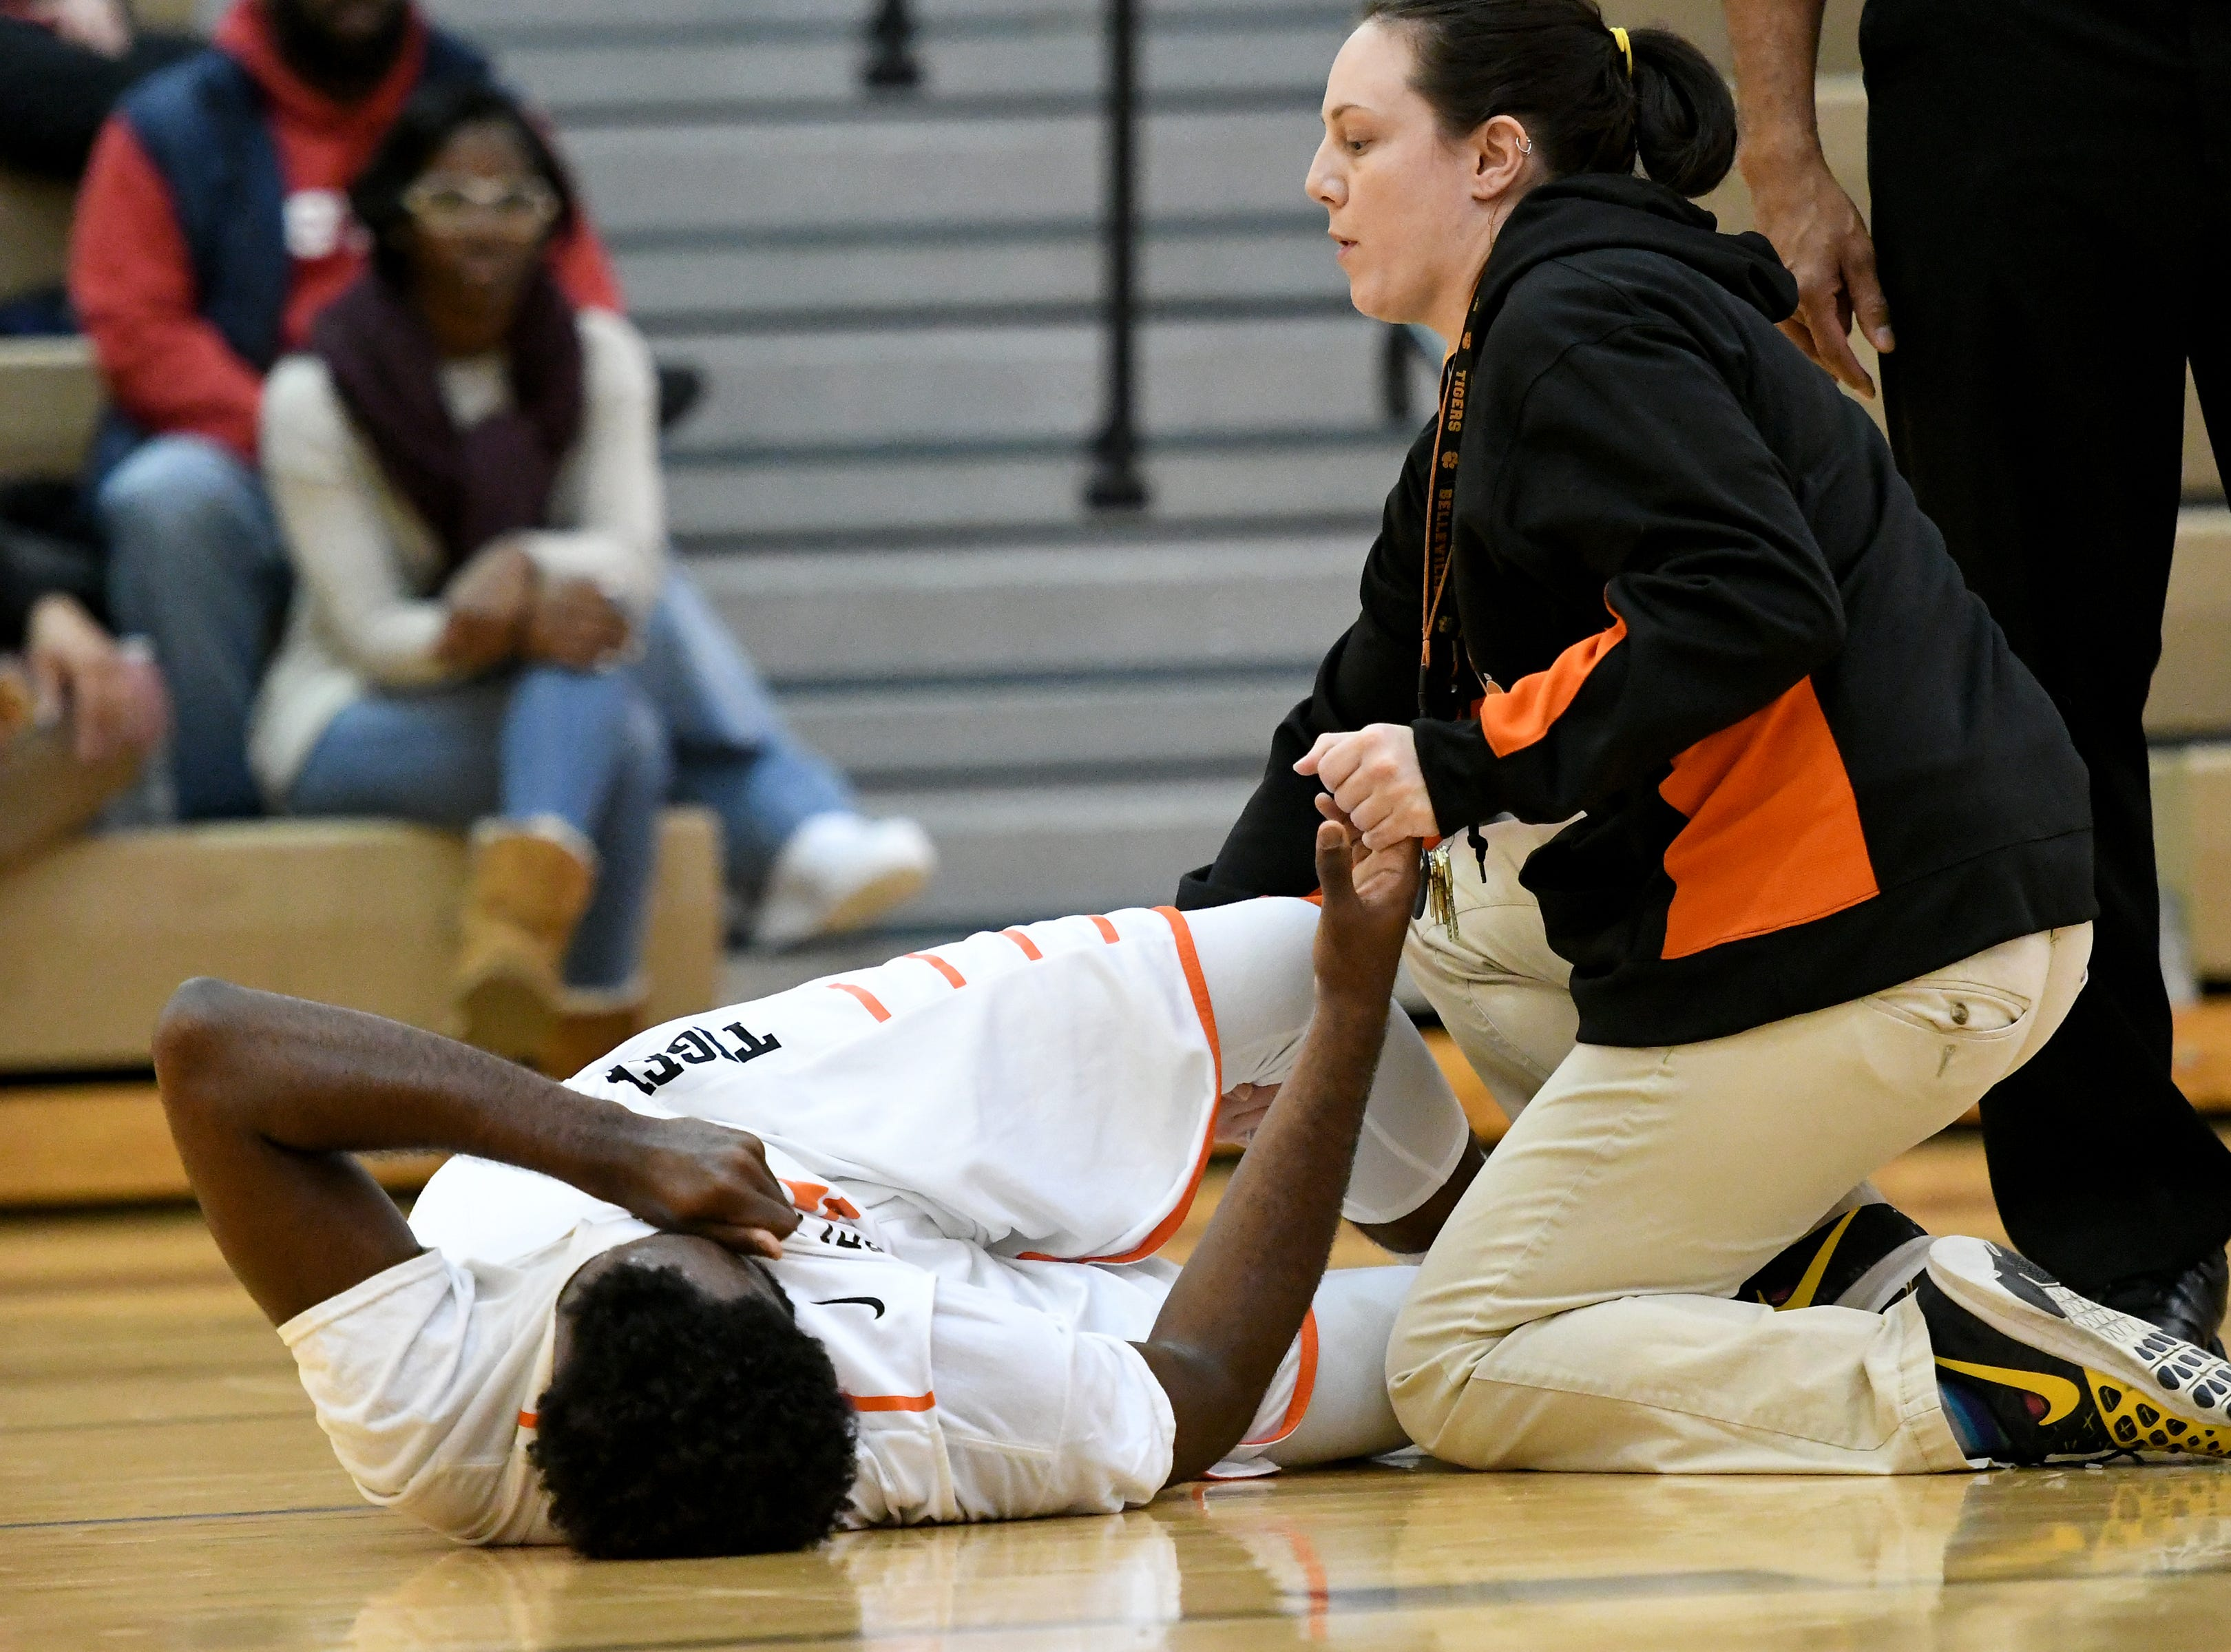 Belleville High School's Connor Bush grimaces in pain after hurting his leg driving to the hoop in the second quarter.